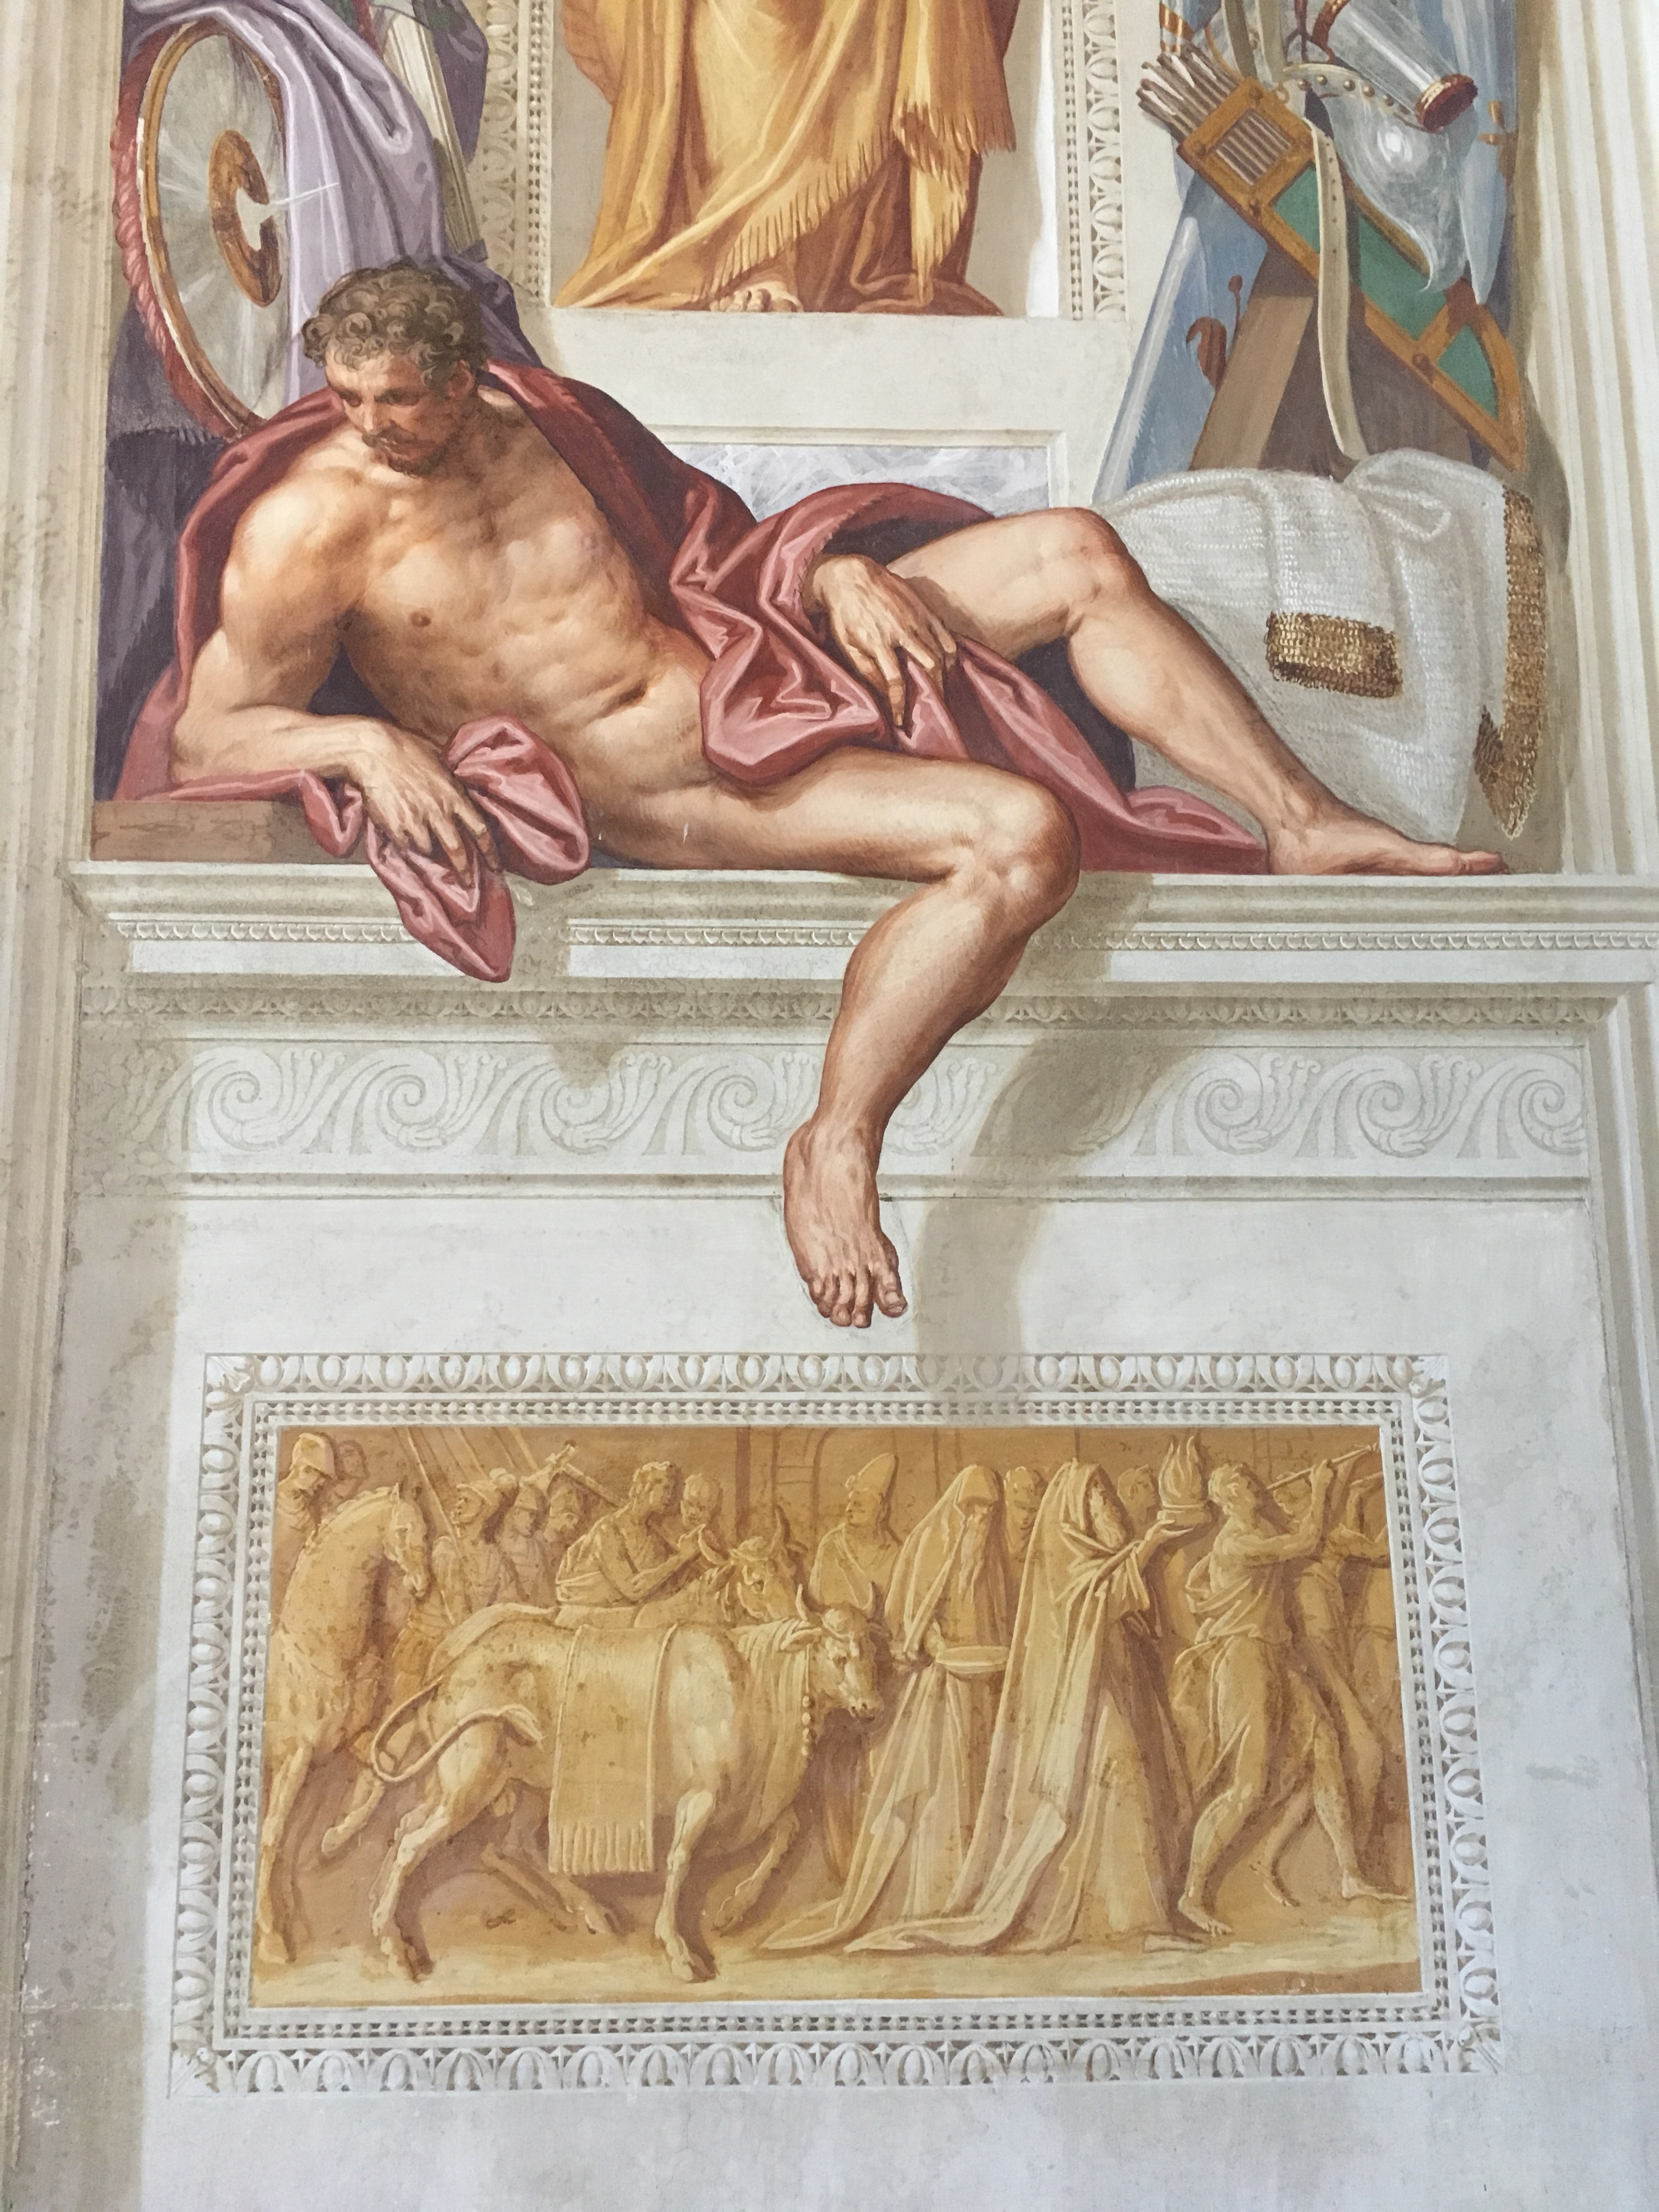 Fresco painter Zelotti created these wonderful trompe l'oeil paintings in the main reception room